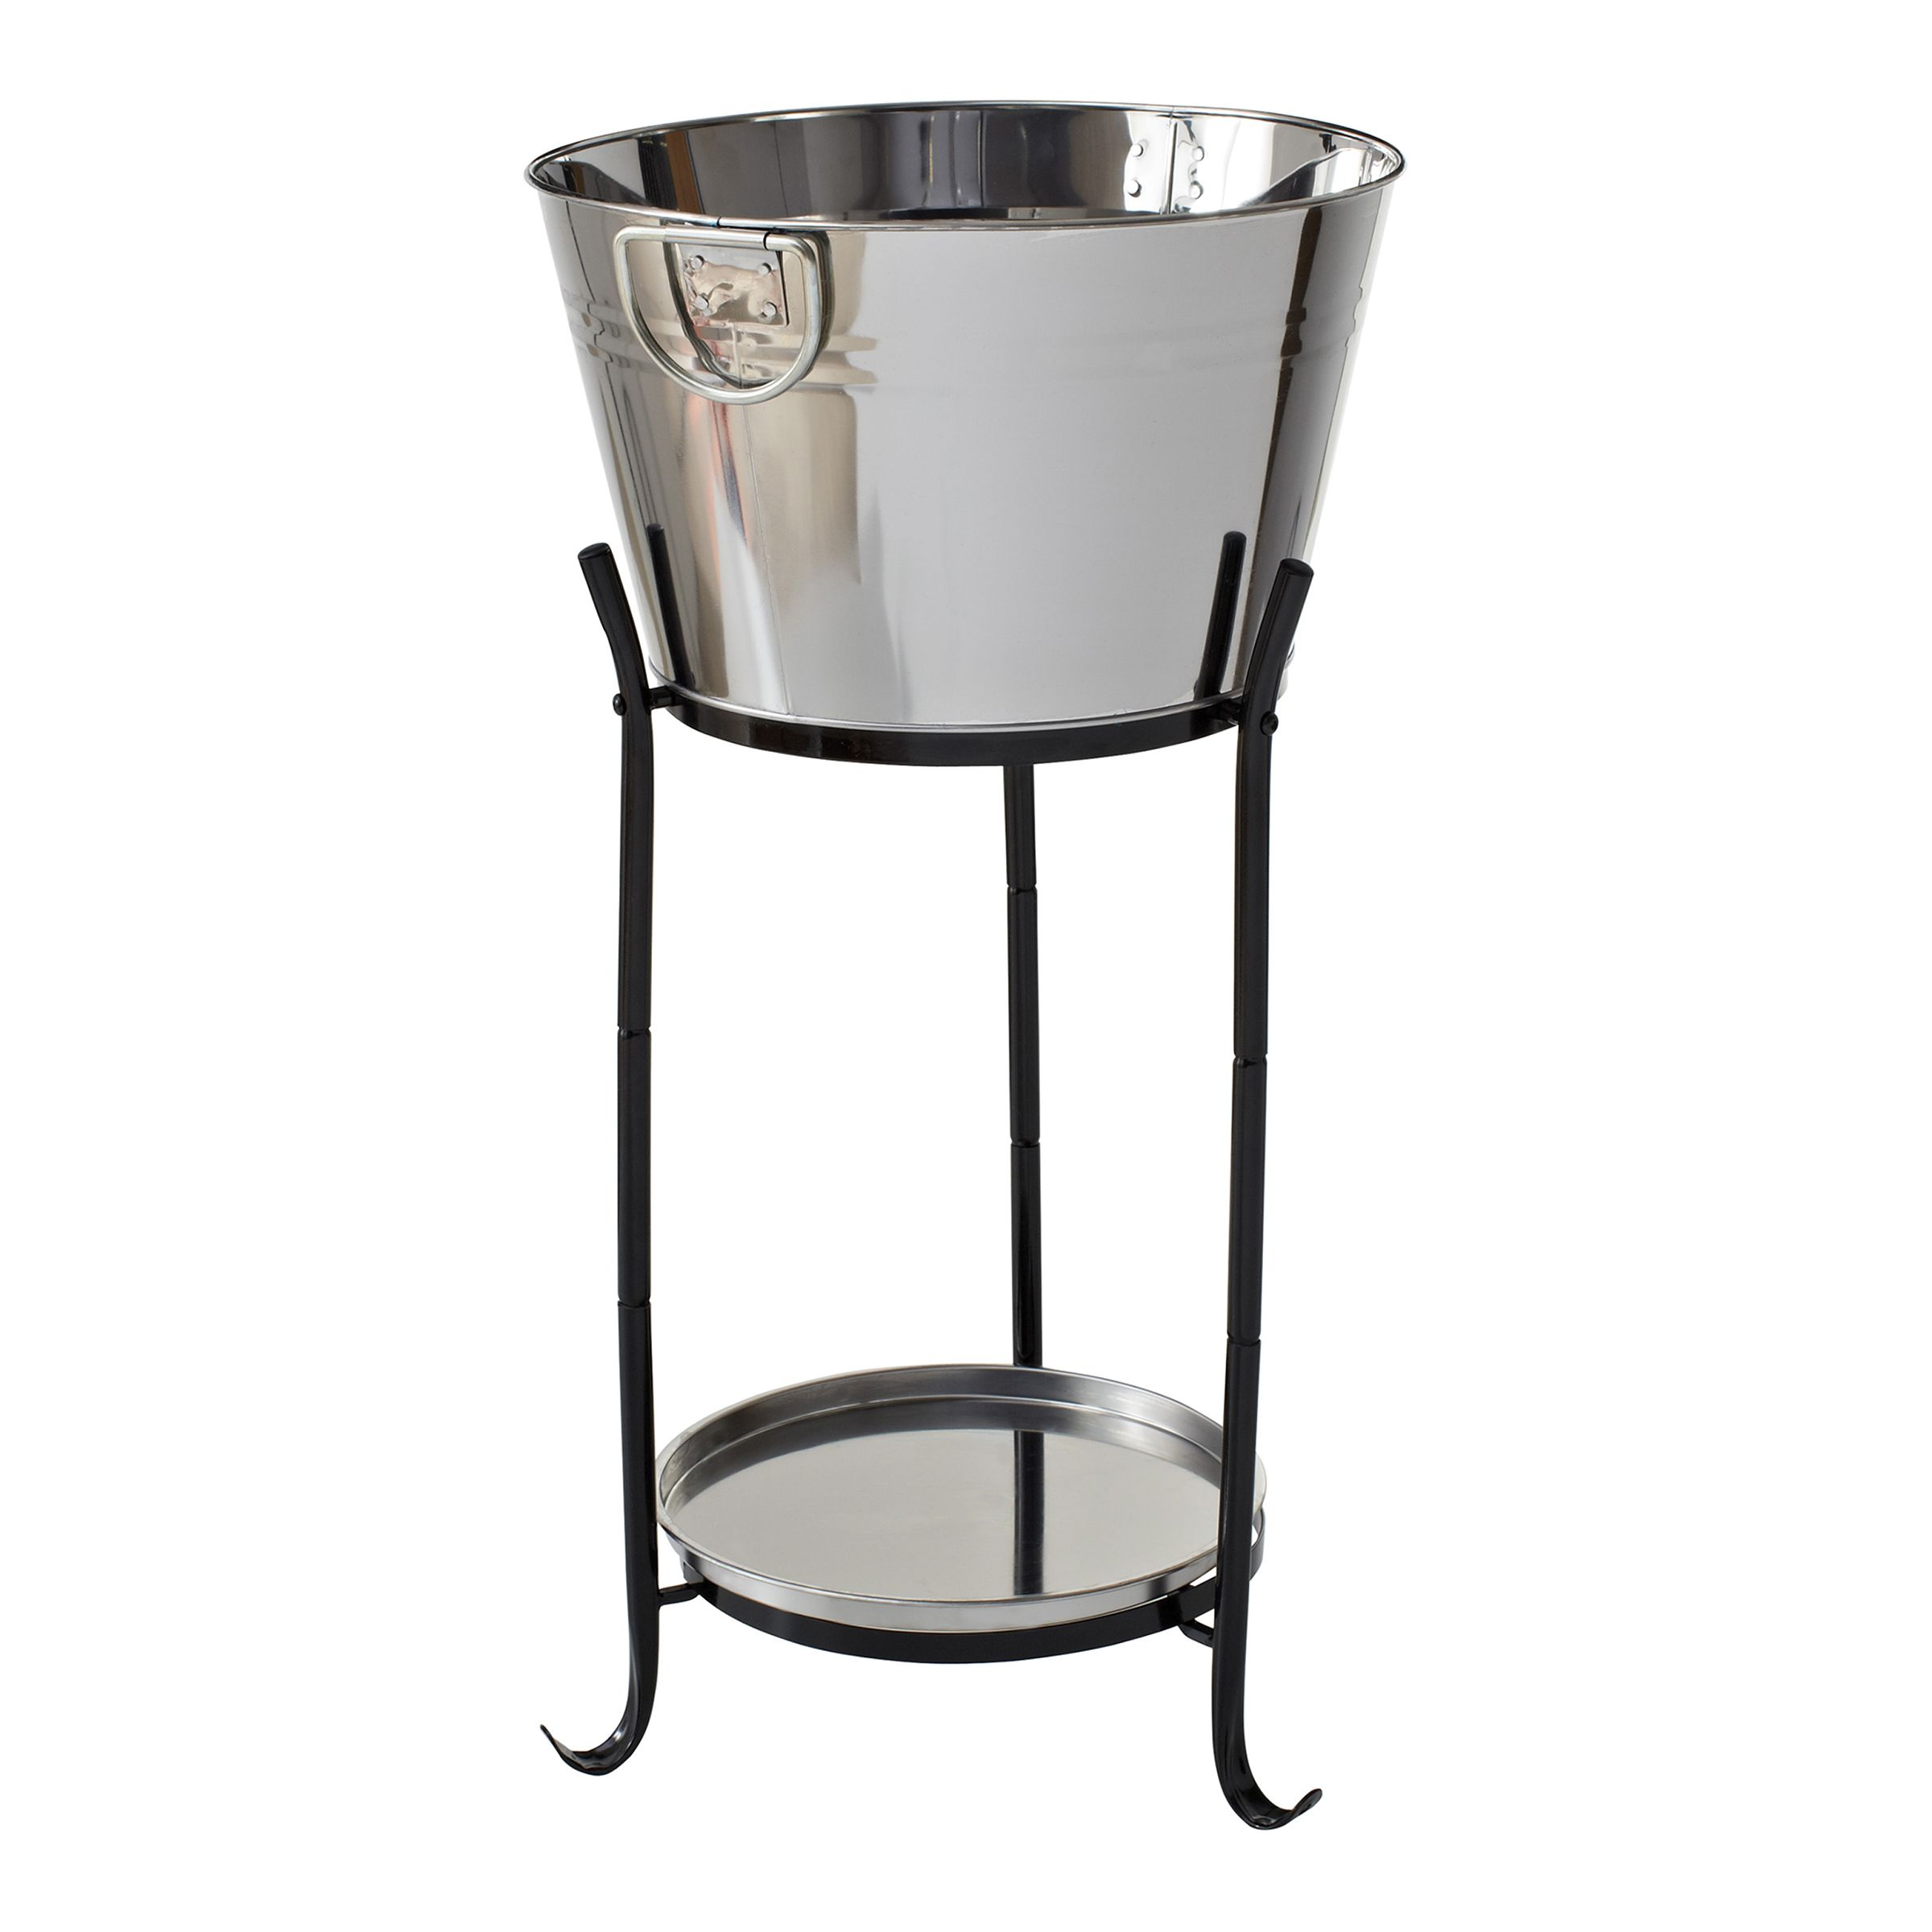 Mimosa Stainless Steel Drinks Cooler With Stand - Bunnings